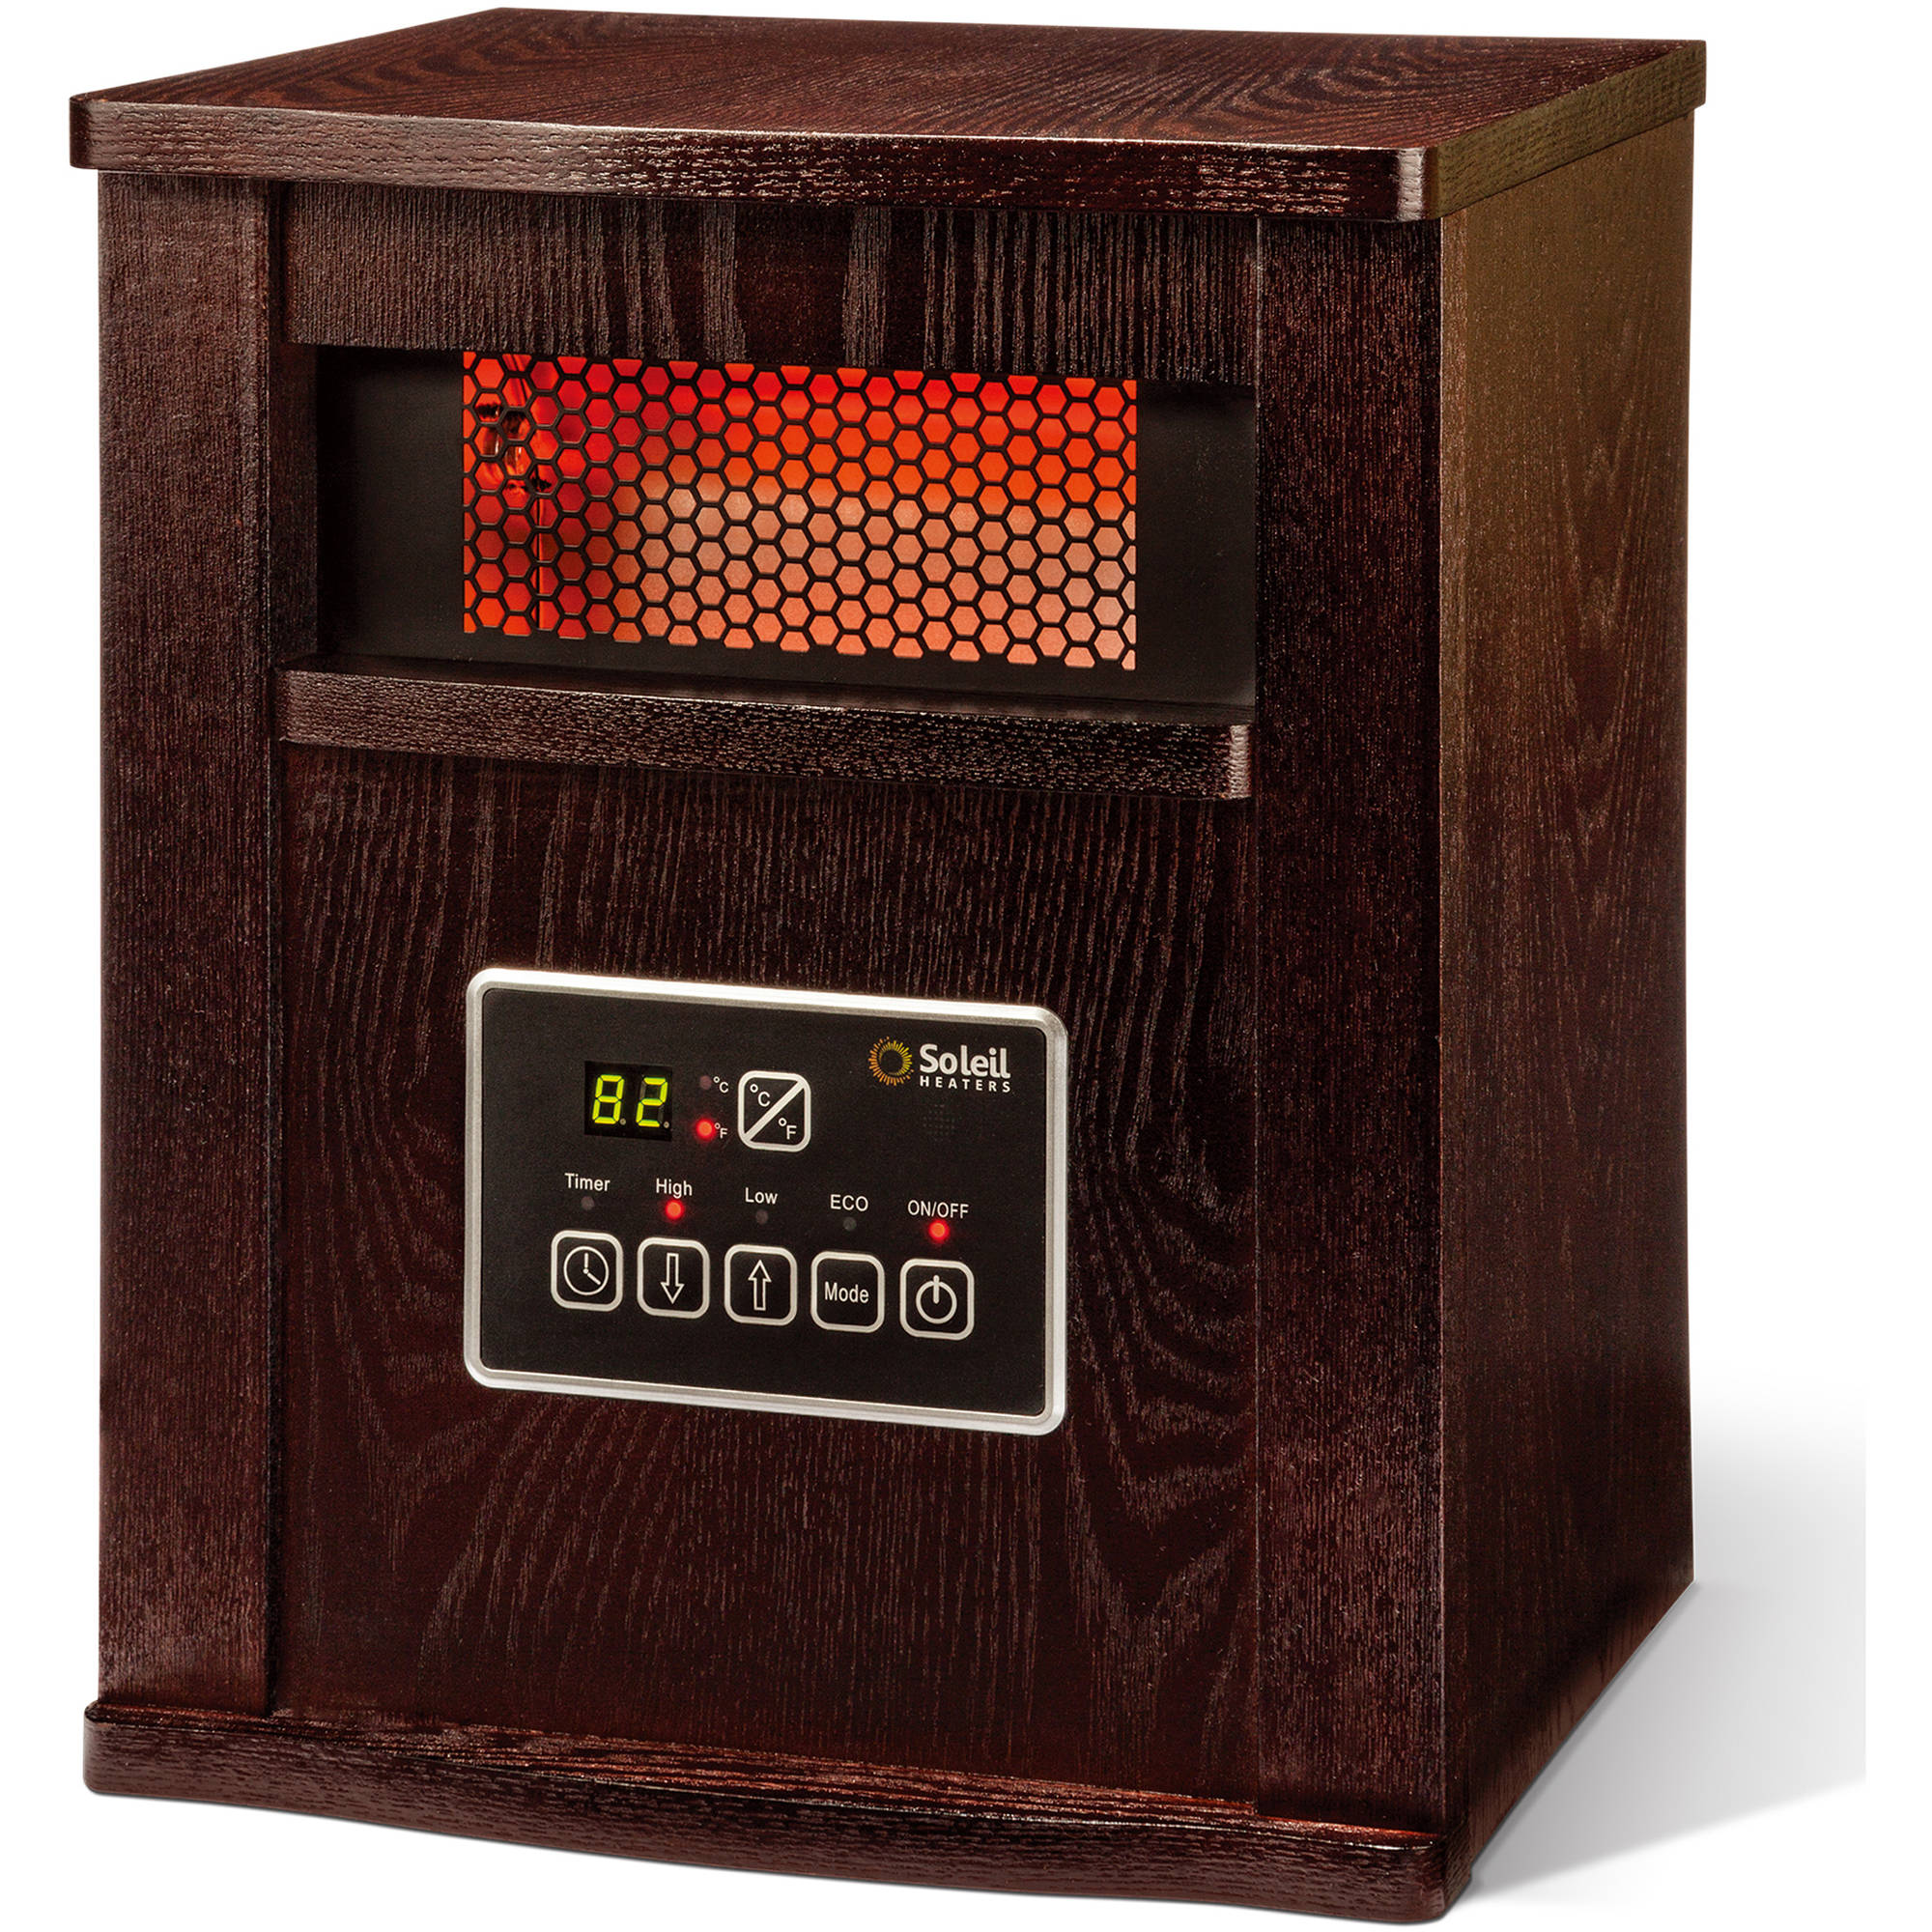 Soleil Infrared 4-Element Quartz Electric Room Space Heater with Remote, 750/1500 Watt, Walnut Color Cabinet, WH-94H